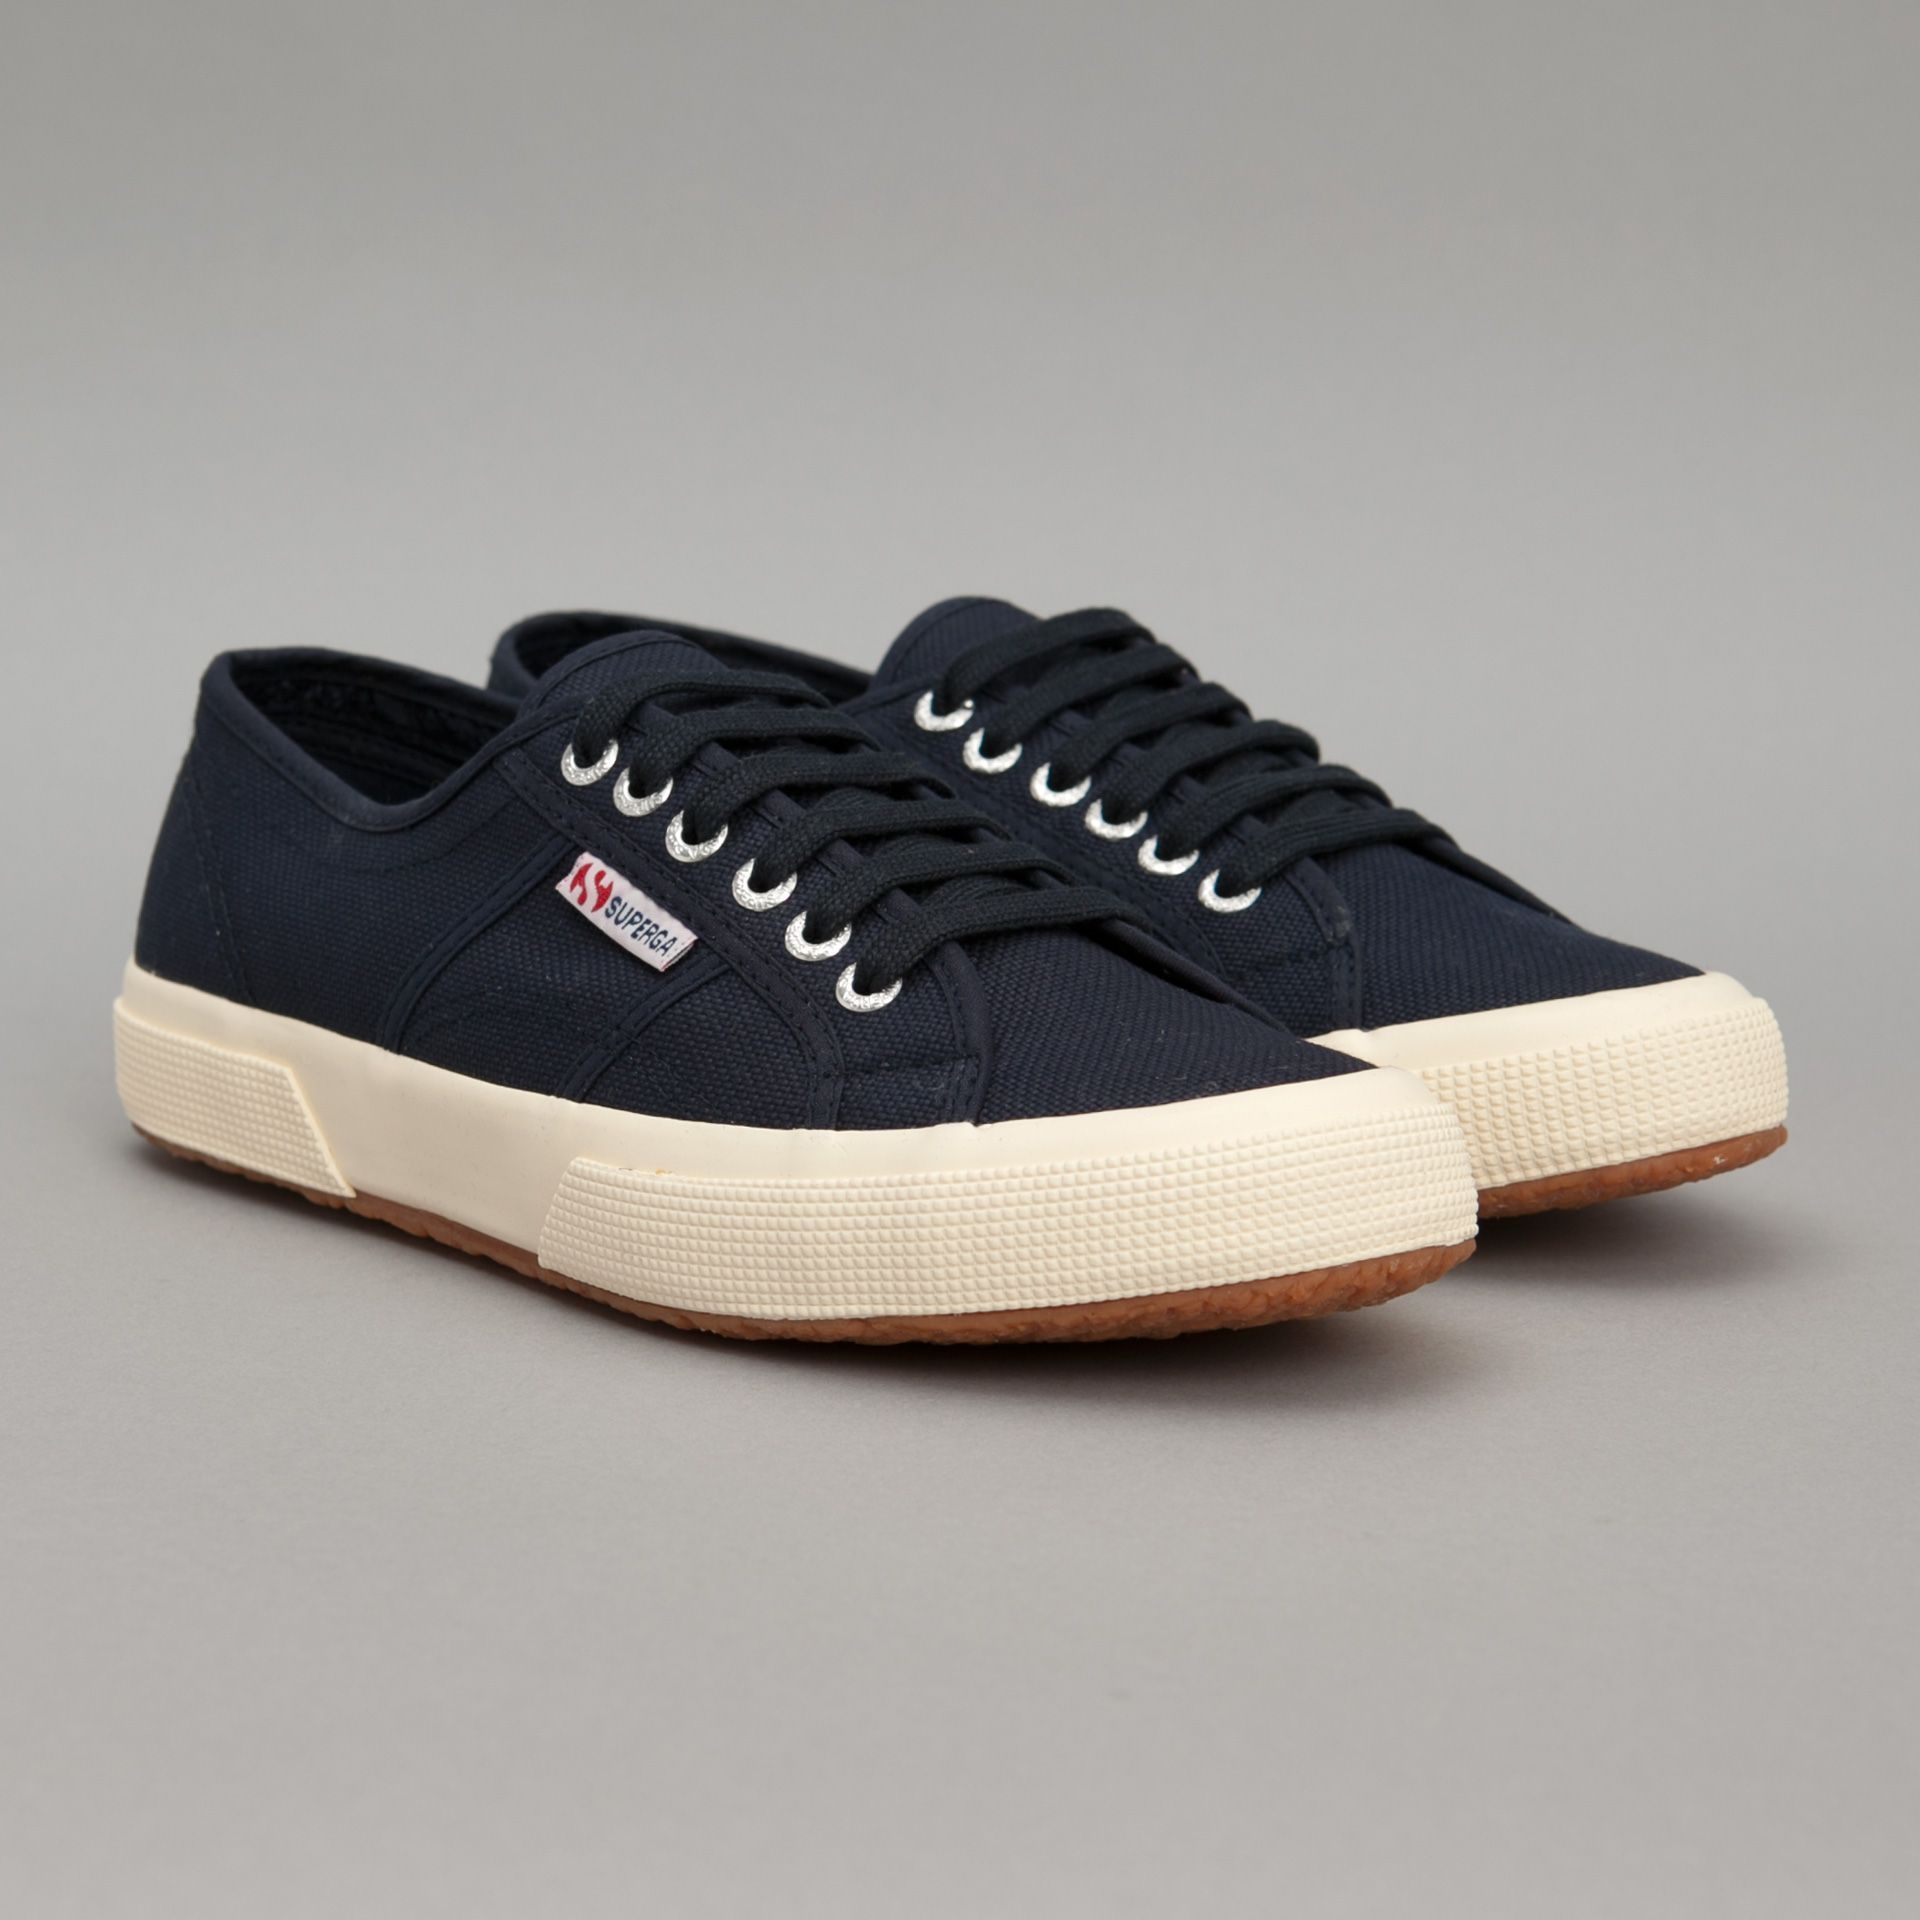 Superga 2750 - Cotu Classic in Navy